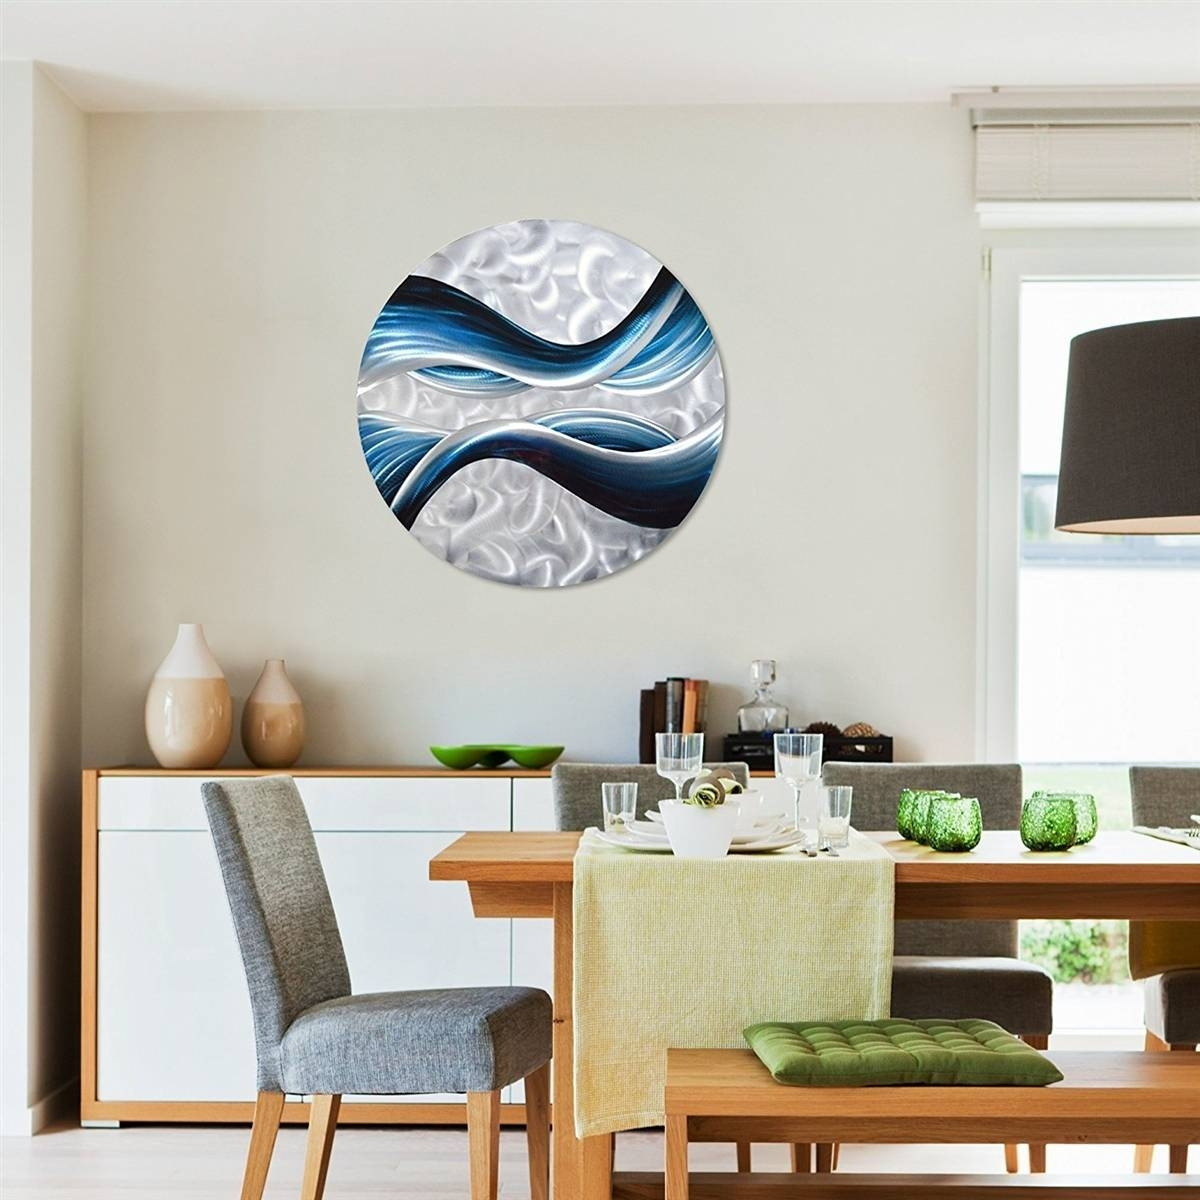 Pure Art Blue Desire Metal Wall Art, Small Round Metal Wall Decor Intended For Current Contemporary 3D Wall Art (View 16 of 20)